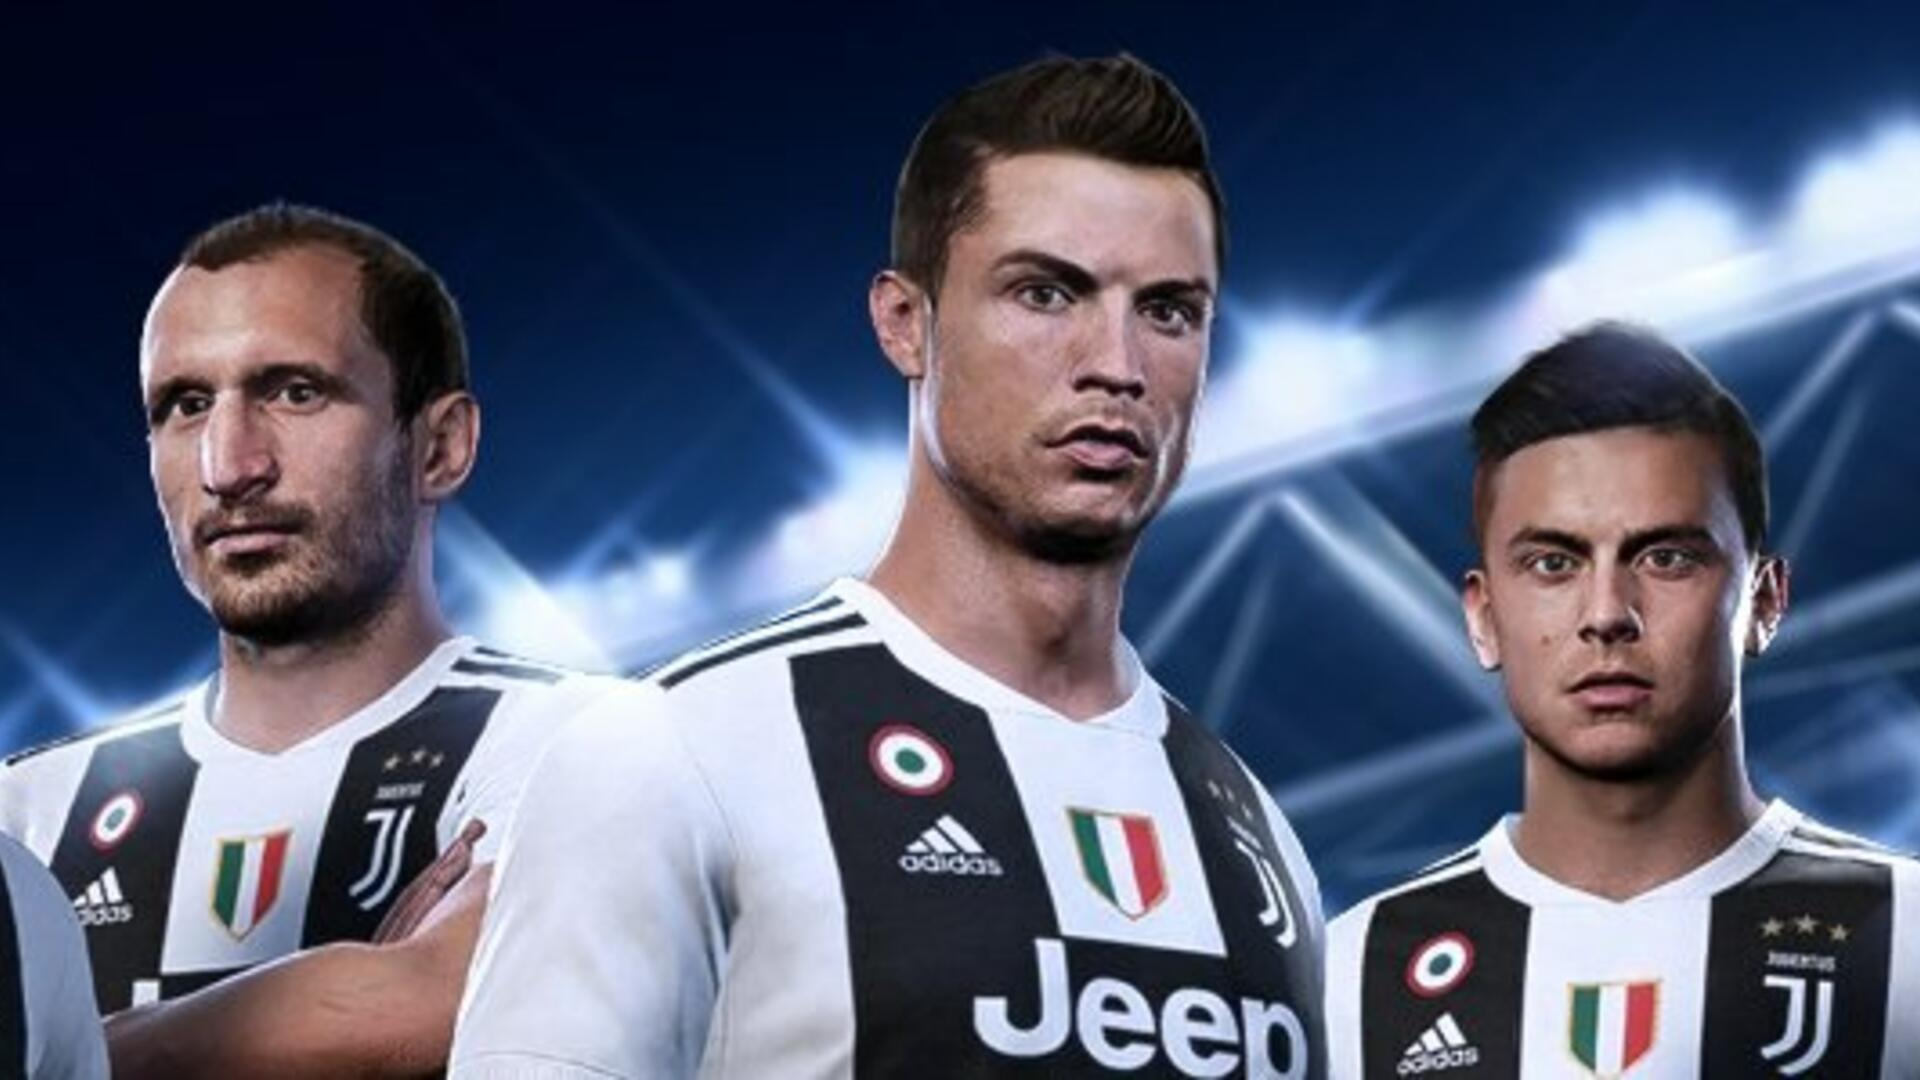 FIFA 19 PC System Specs - What Minimum PC Specs are Needed to Run FIFA 19